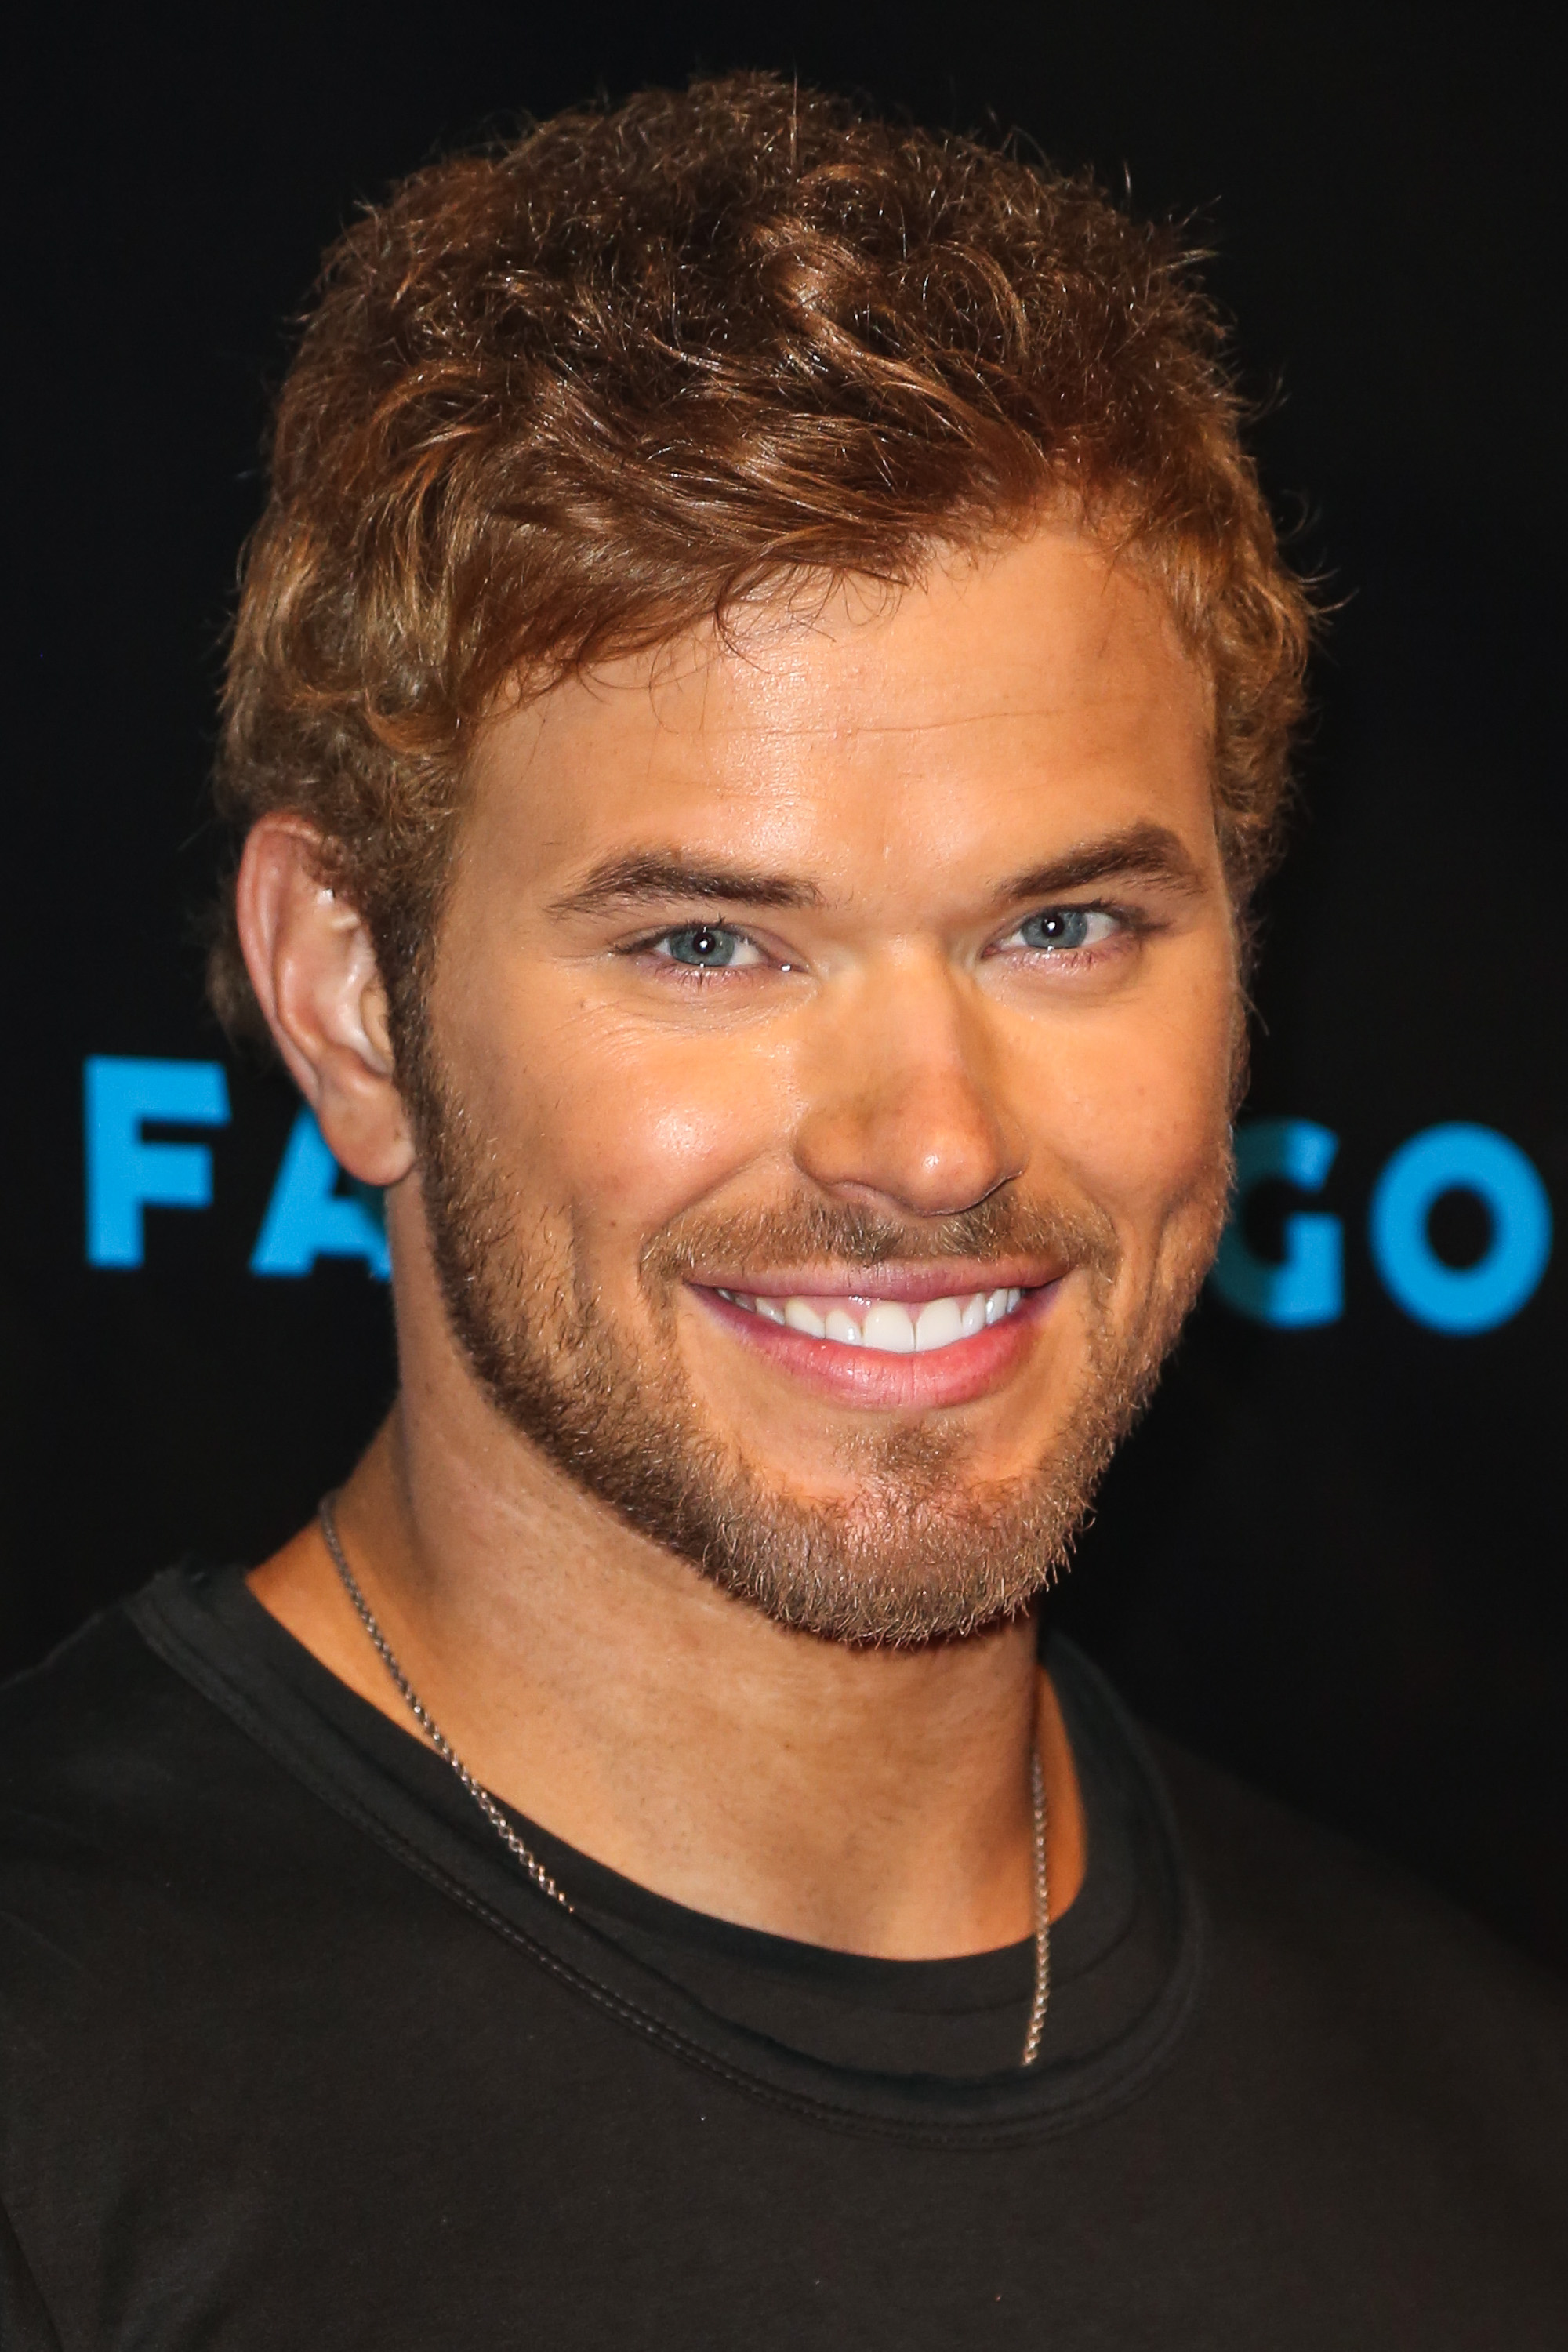 Kellan Lutz Gave A Smile At The Breaking Dawn Part 2 Party